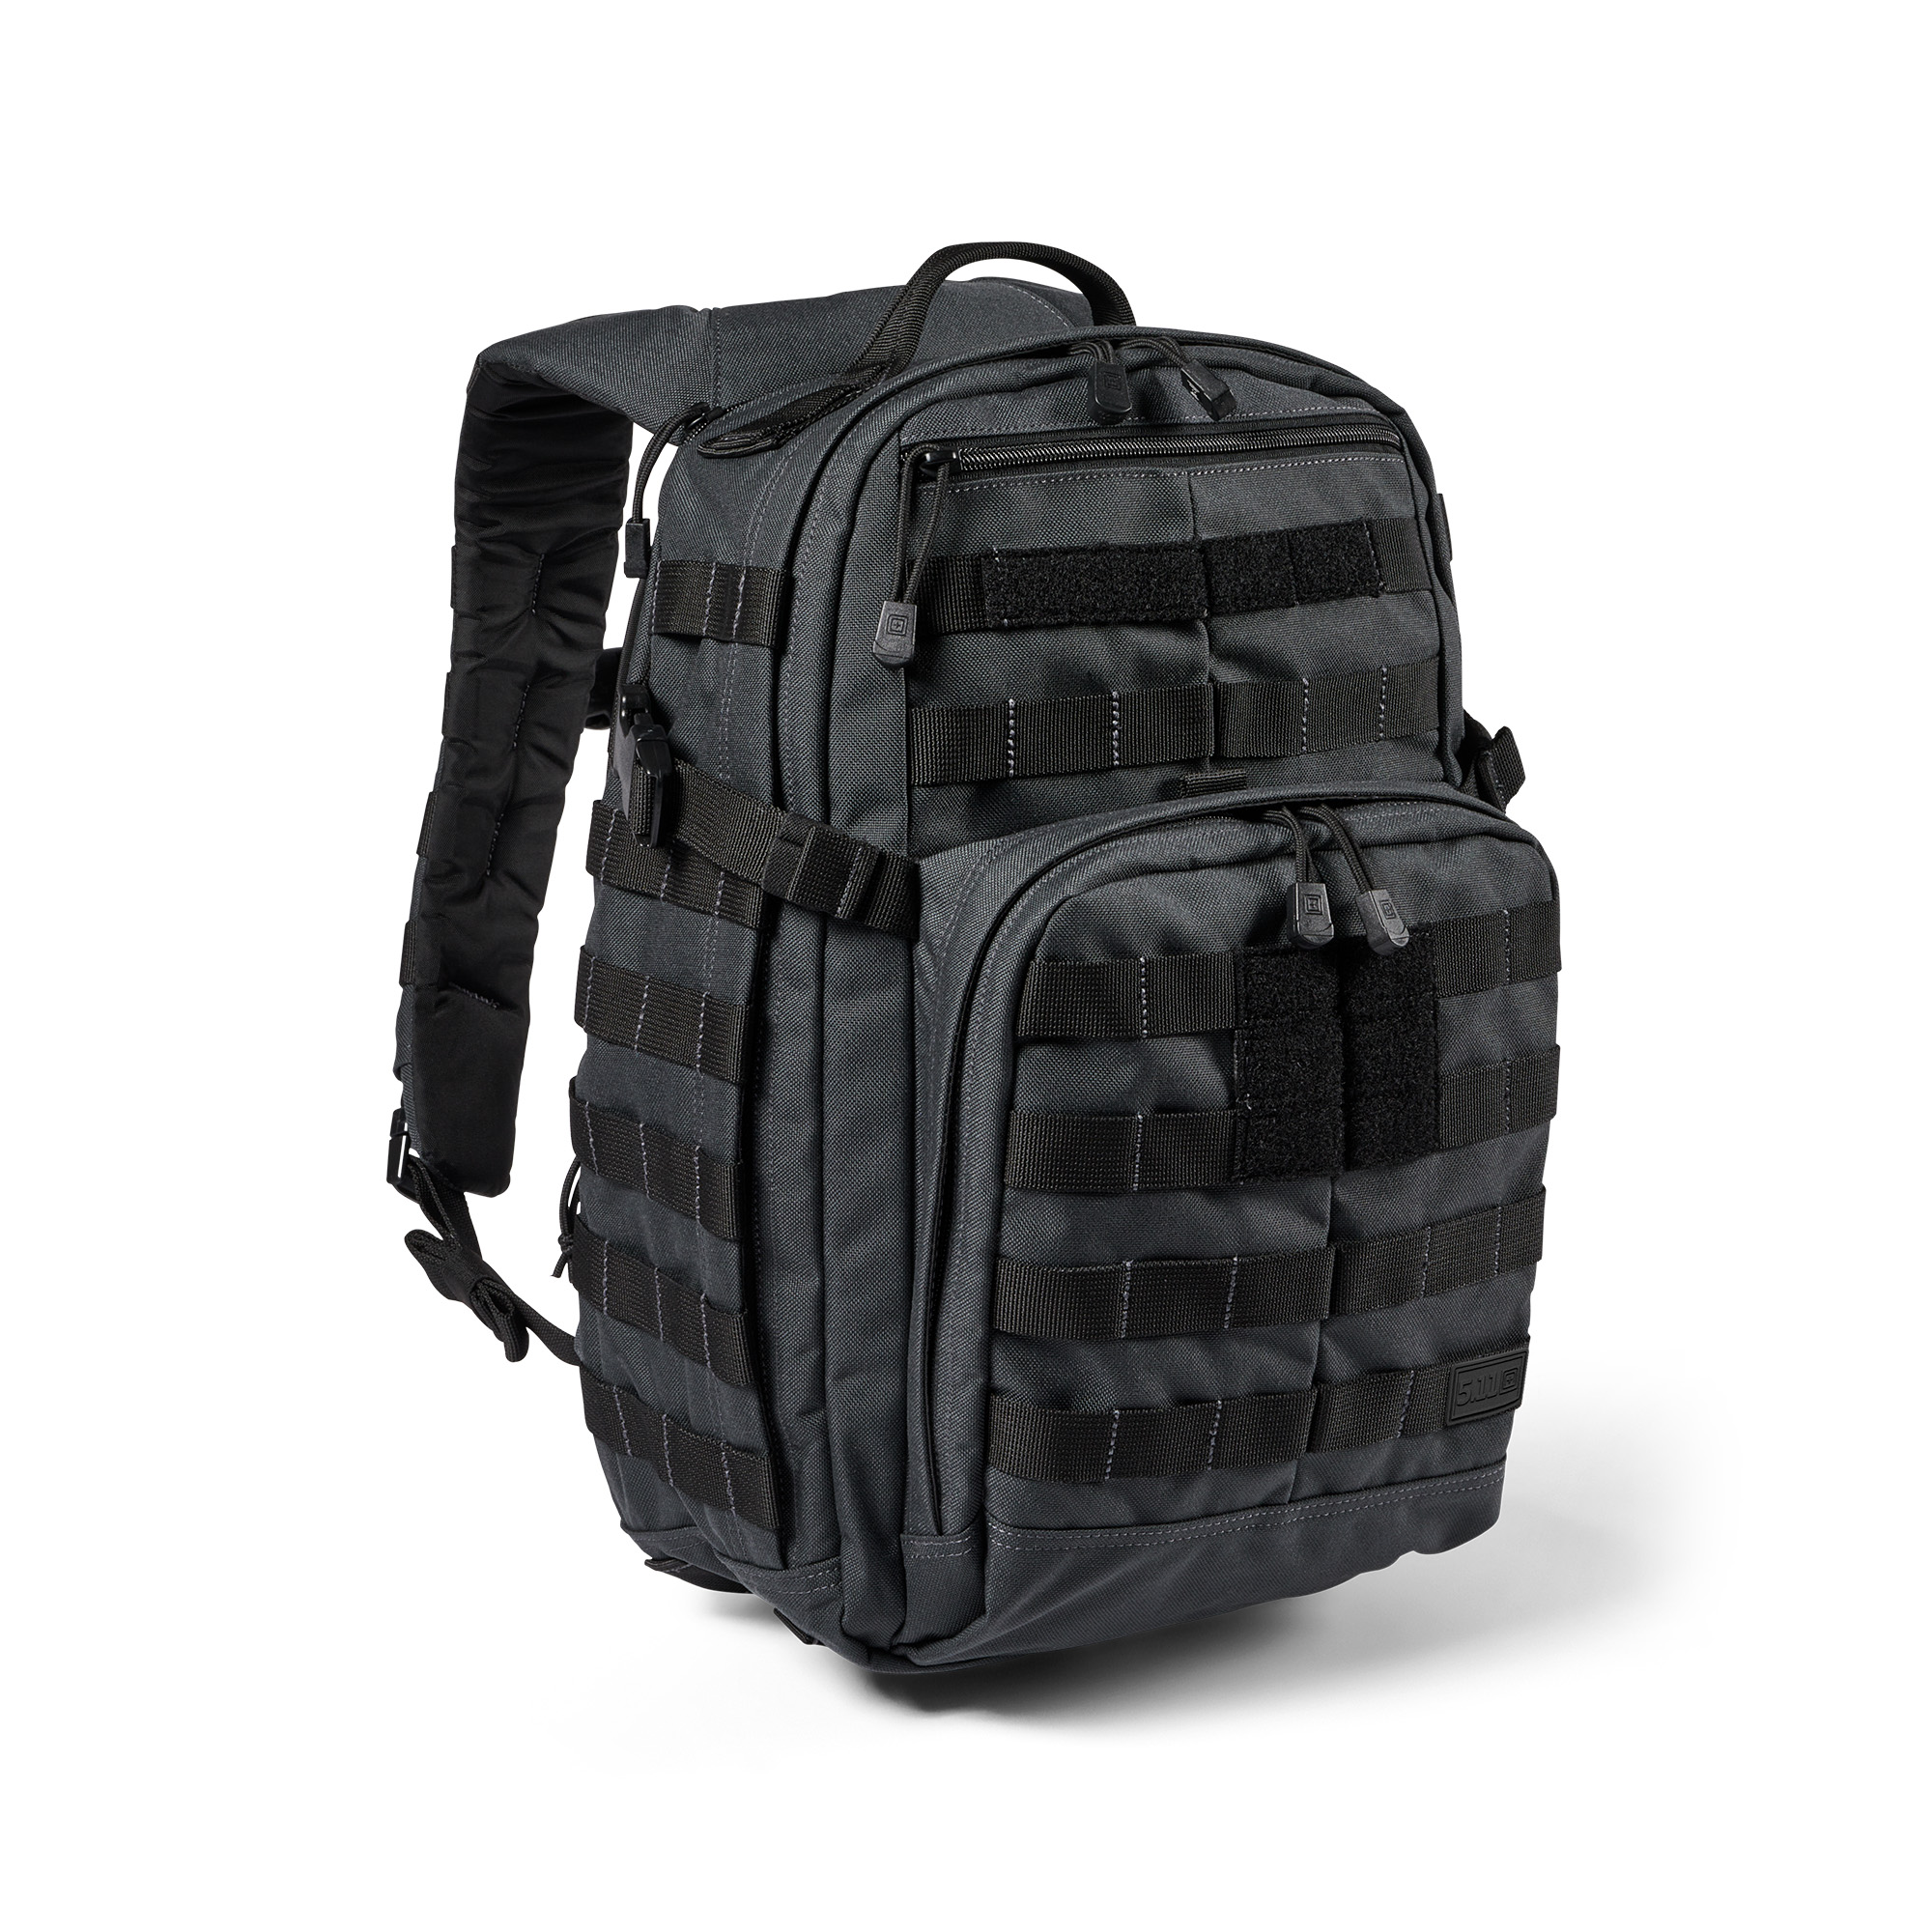 Balo 5.11 Tactical Rush 12 2.0 – Double Tap